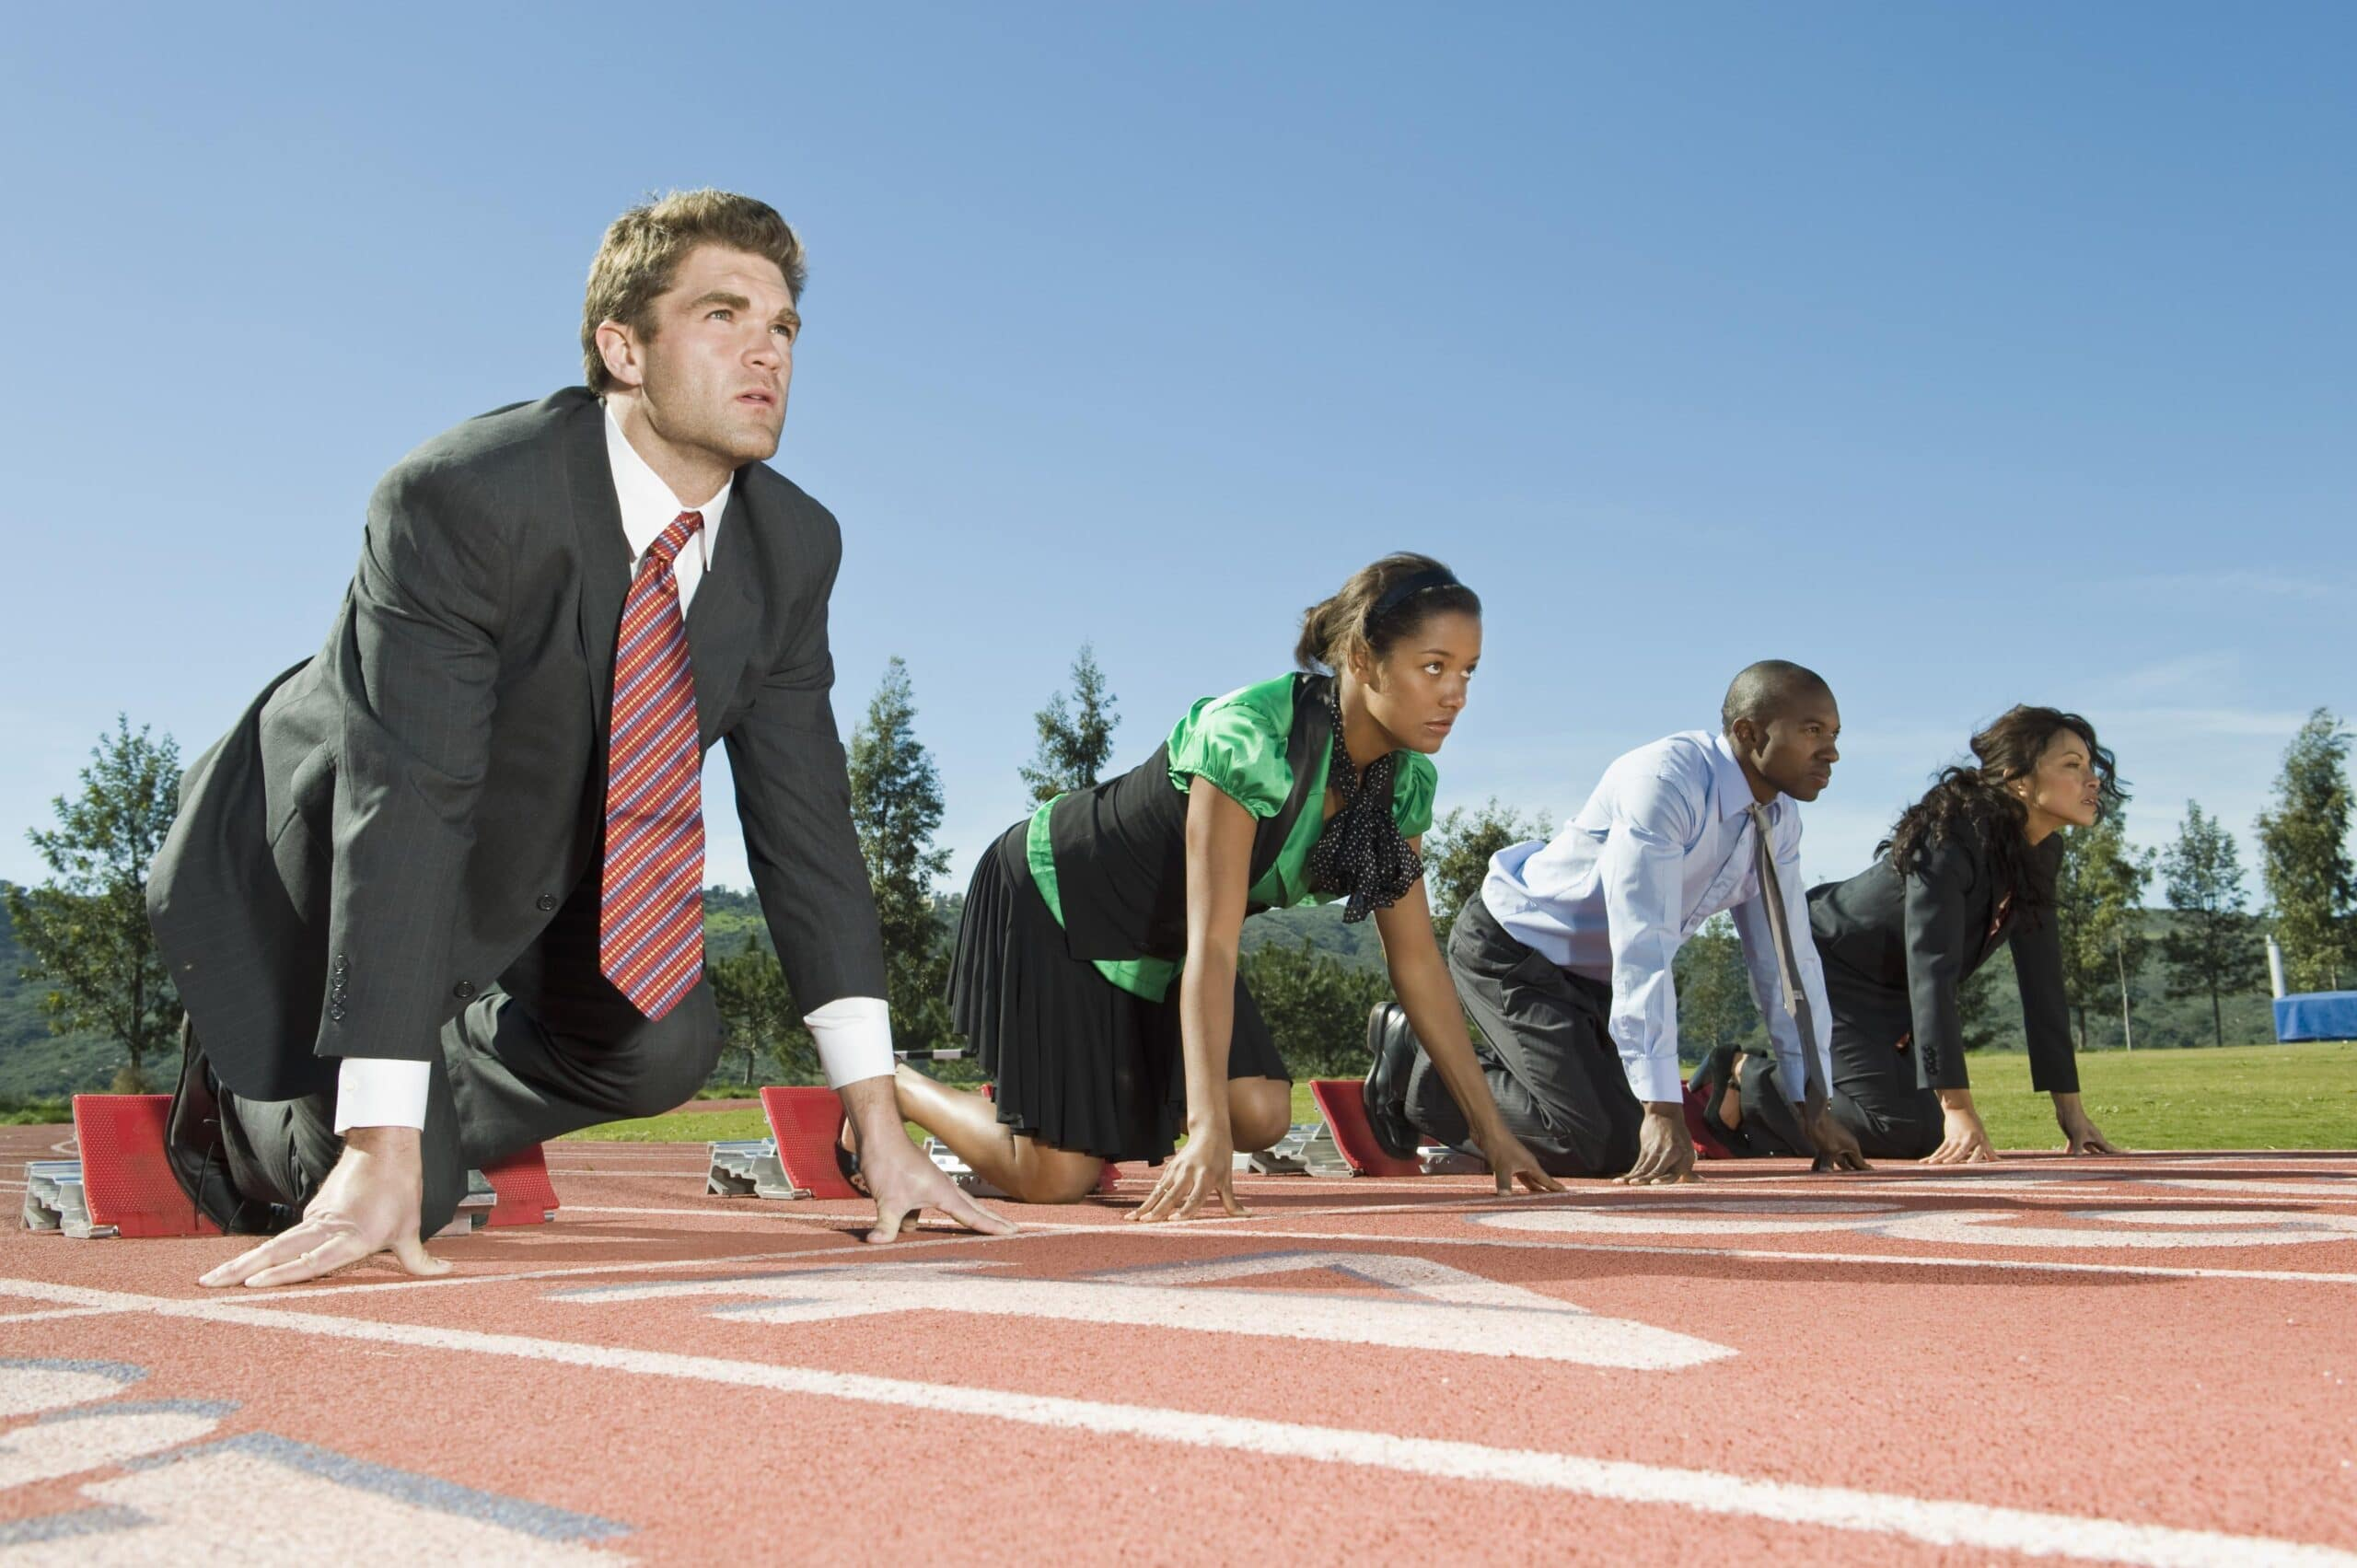 Business_people_on_a_running_track